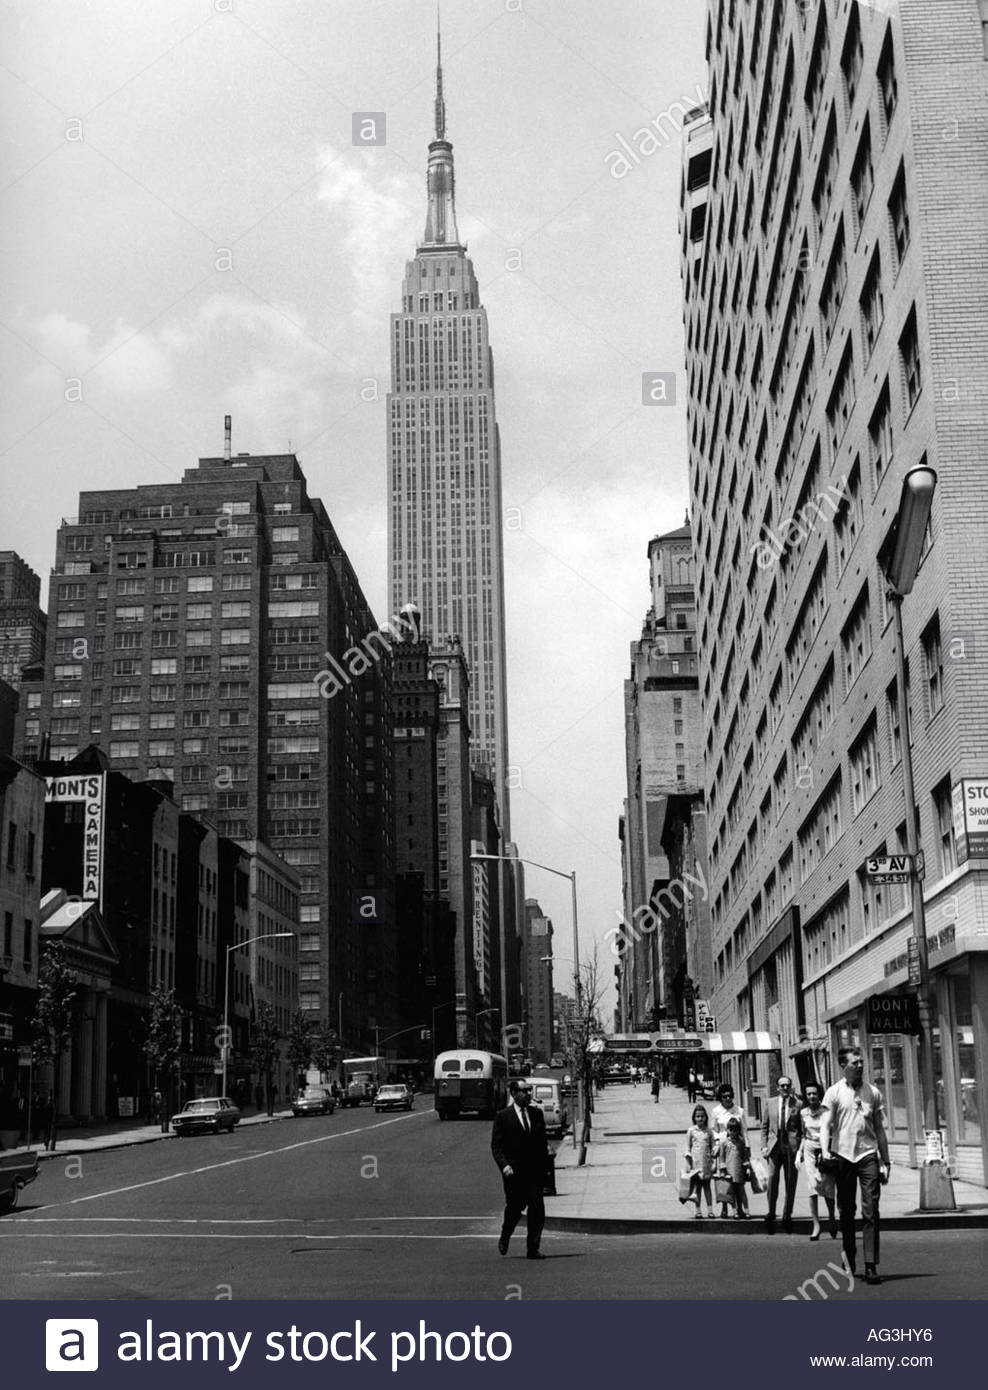 empire state building new york 1950s stockfotos empire. Black Bedroom Furniture Sets. Home Design Ideas